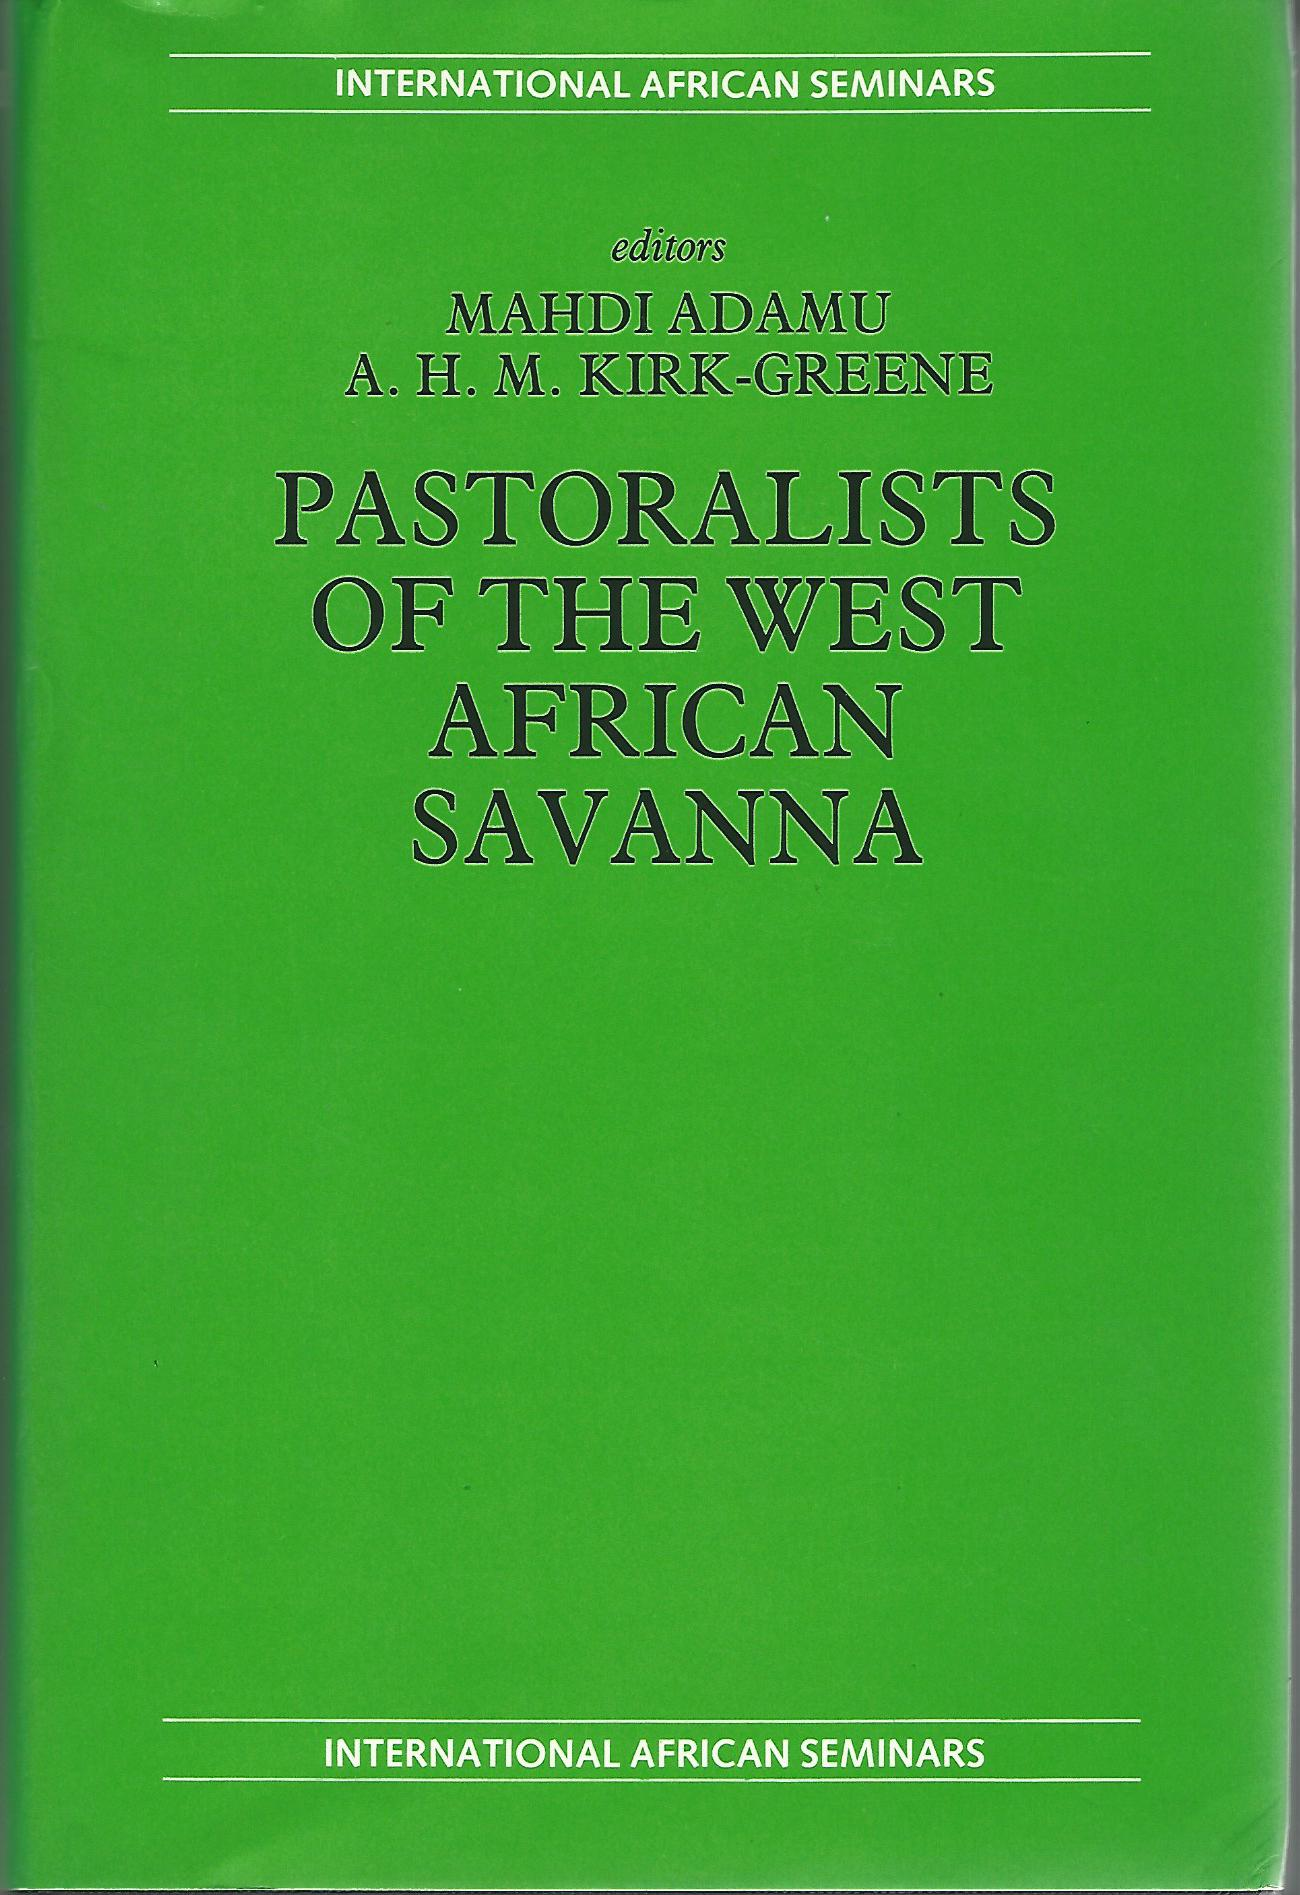 Image for Pastoralists of the West African Savanna: Selected Studies Presented and Discussed at the Fifteenth Intl Afri (International African Seminars, New Series)